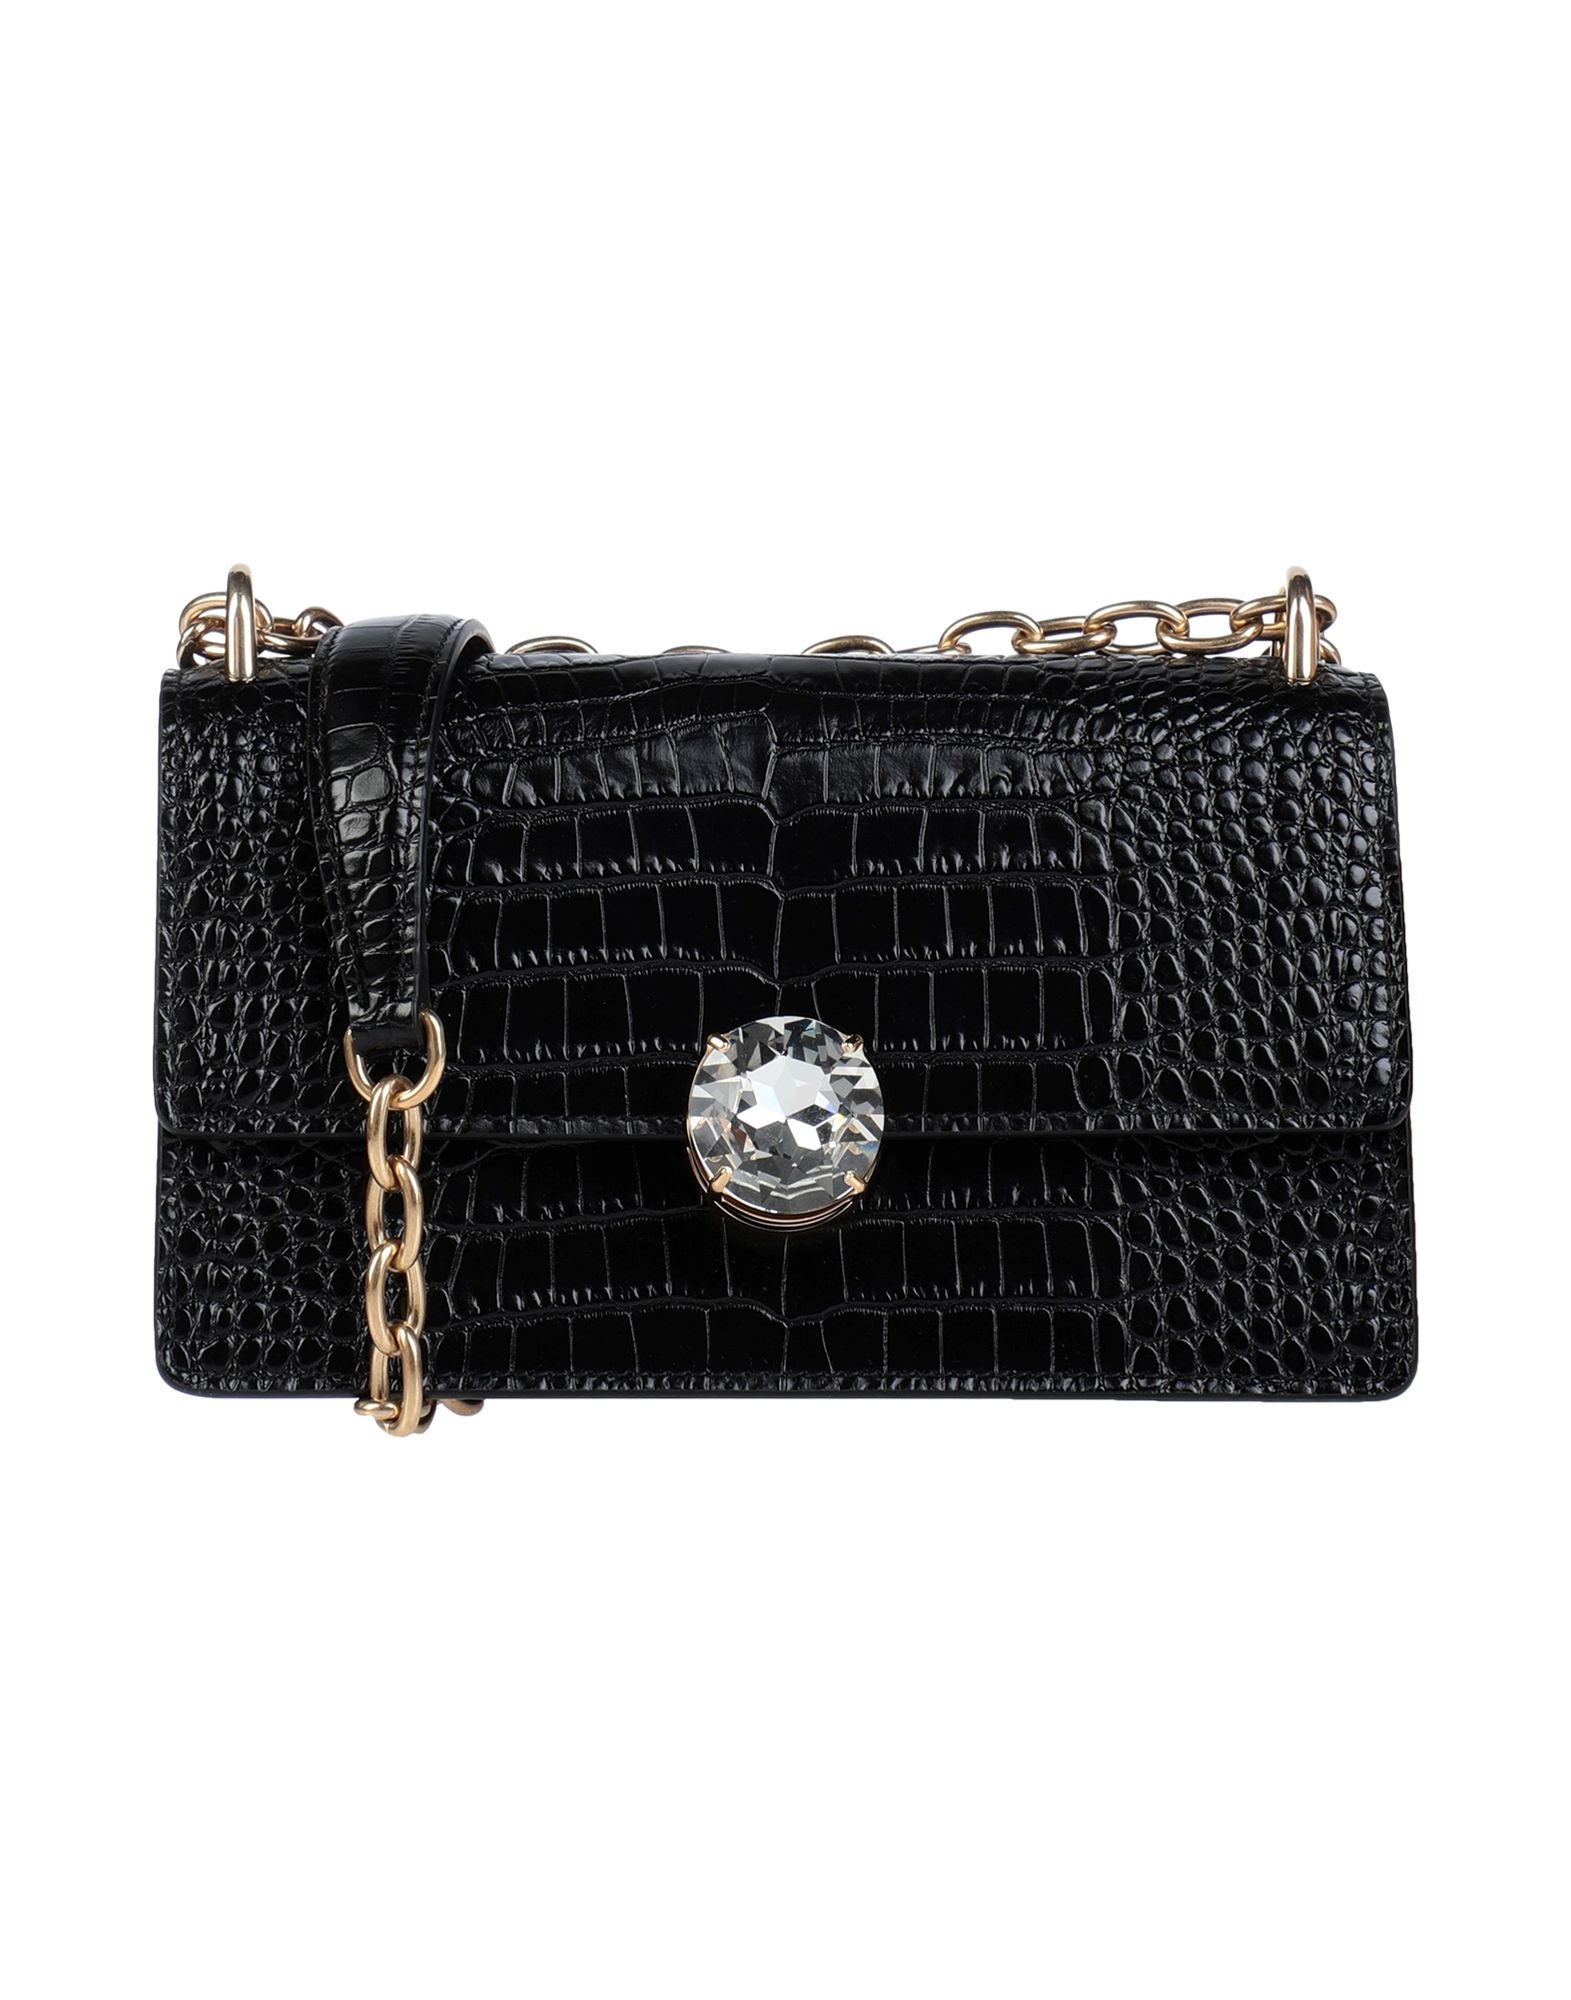 MIU MIU Cross-body bags - Item 45503591